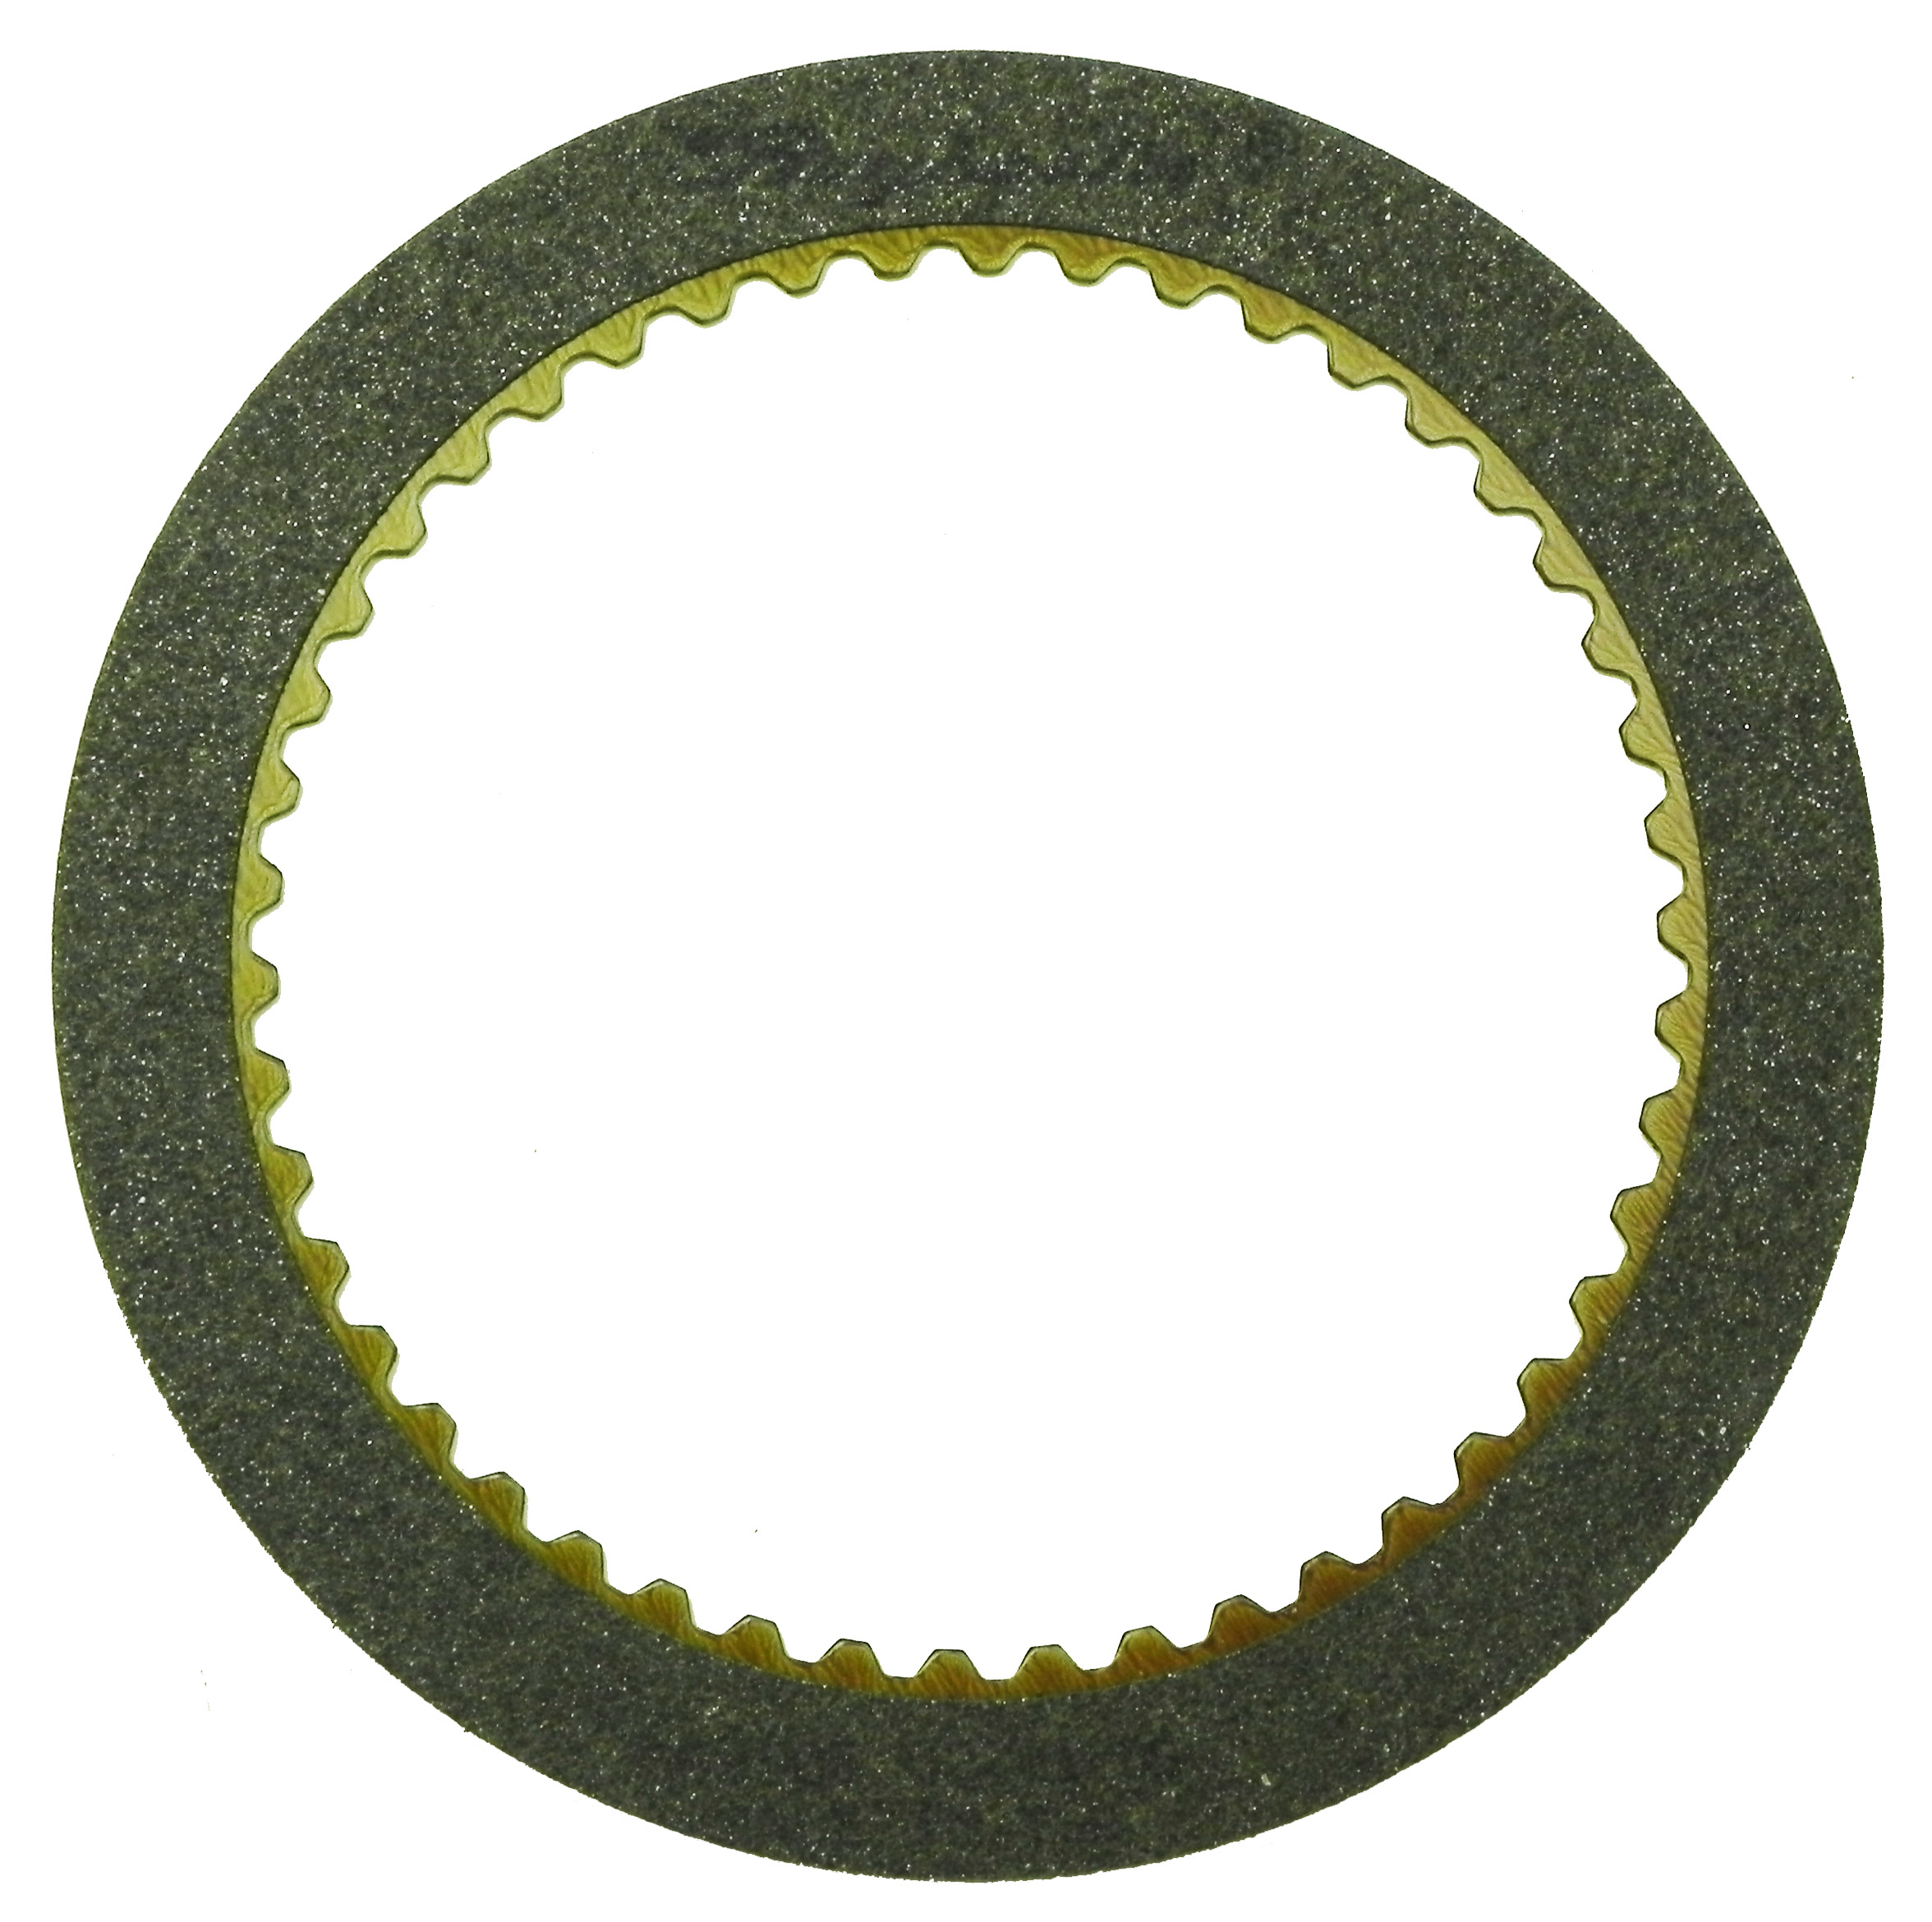 R563105 | 1985-ON Friction Clutch Plate High Energy Overdrive Direct, Forward, Direct High Energy